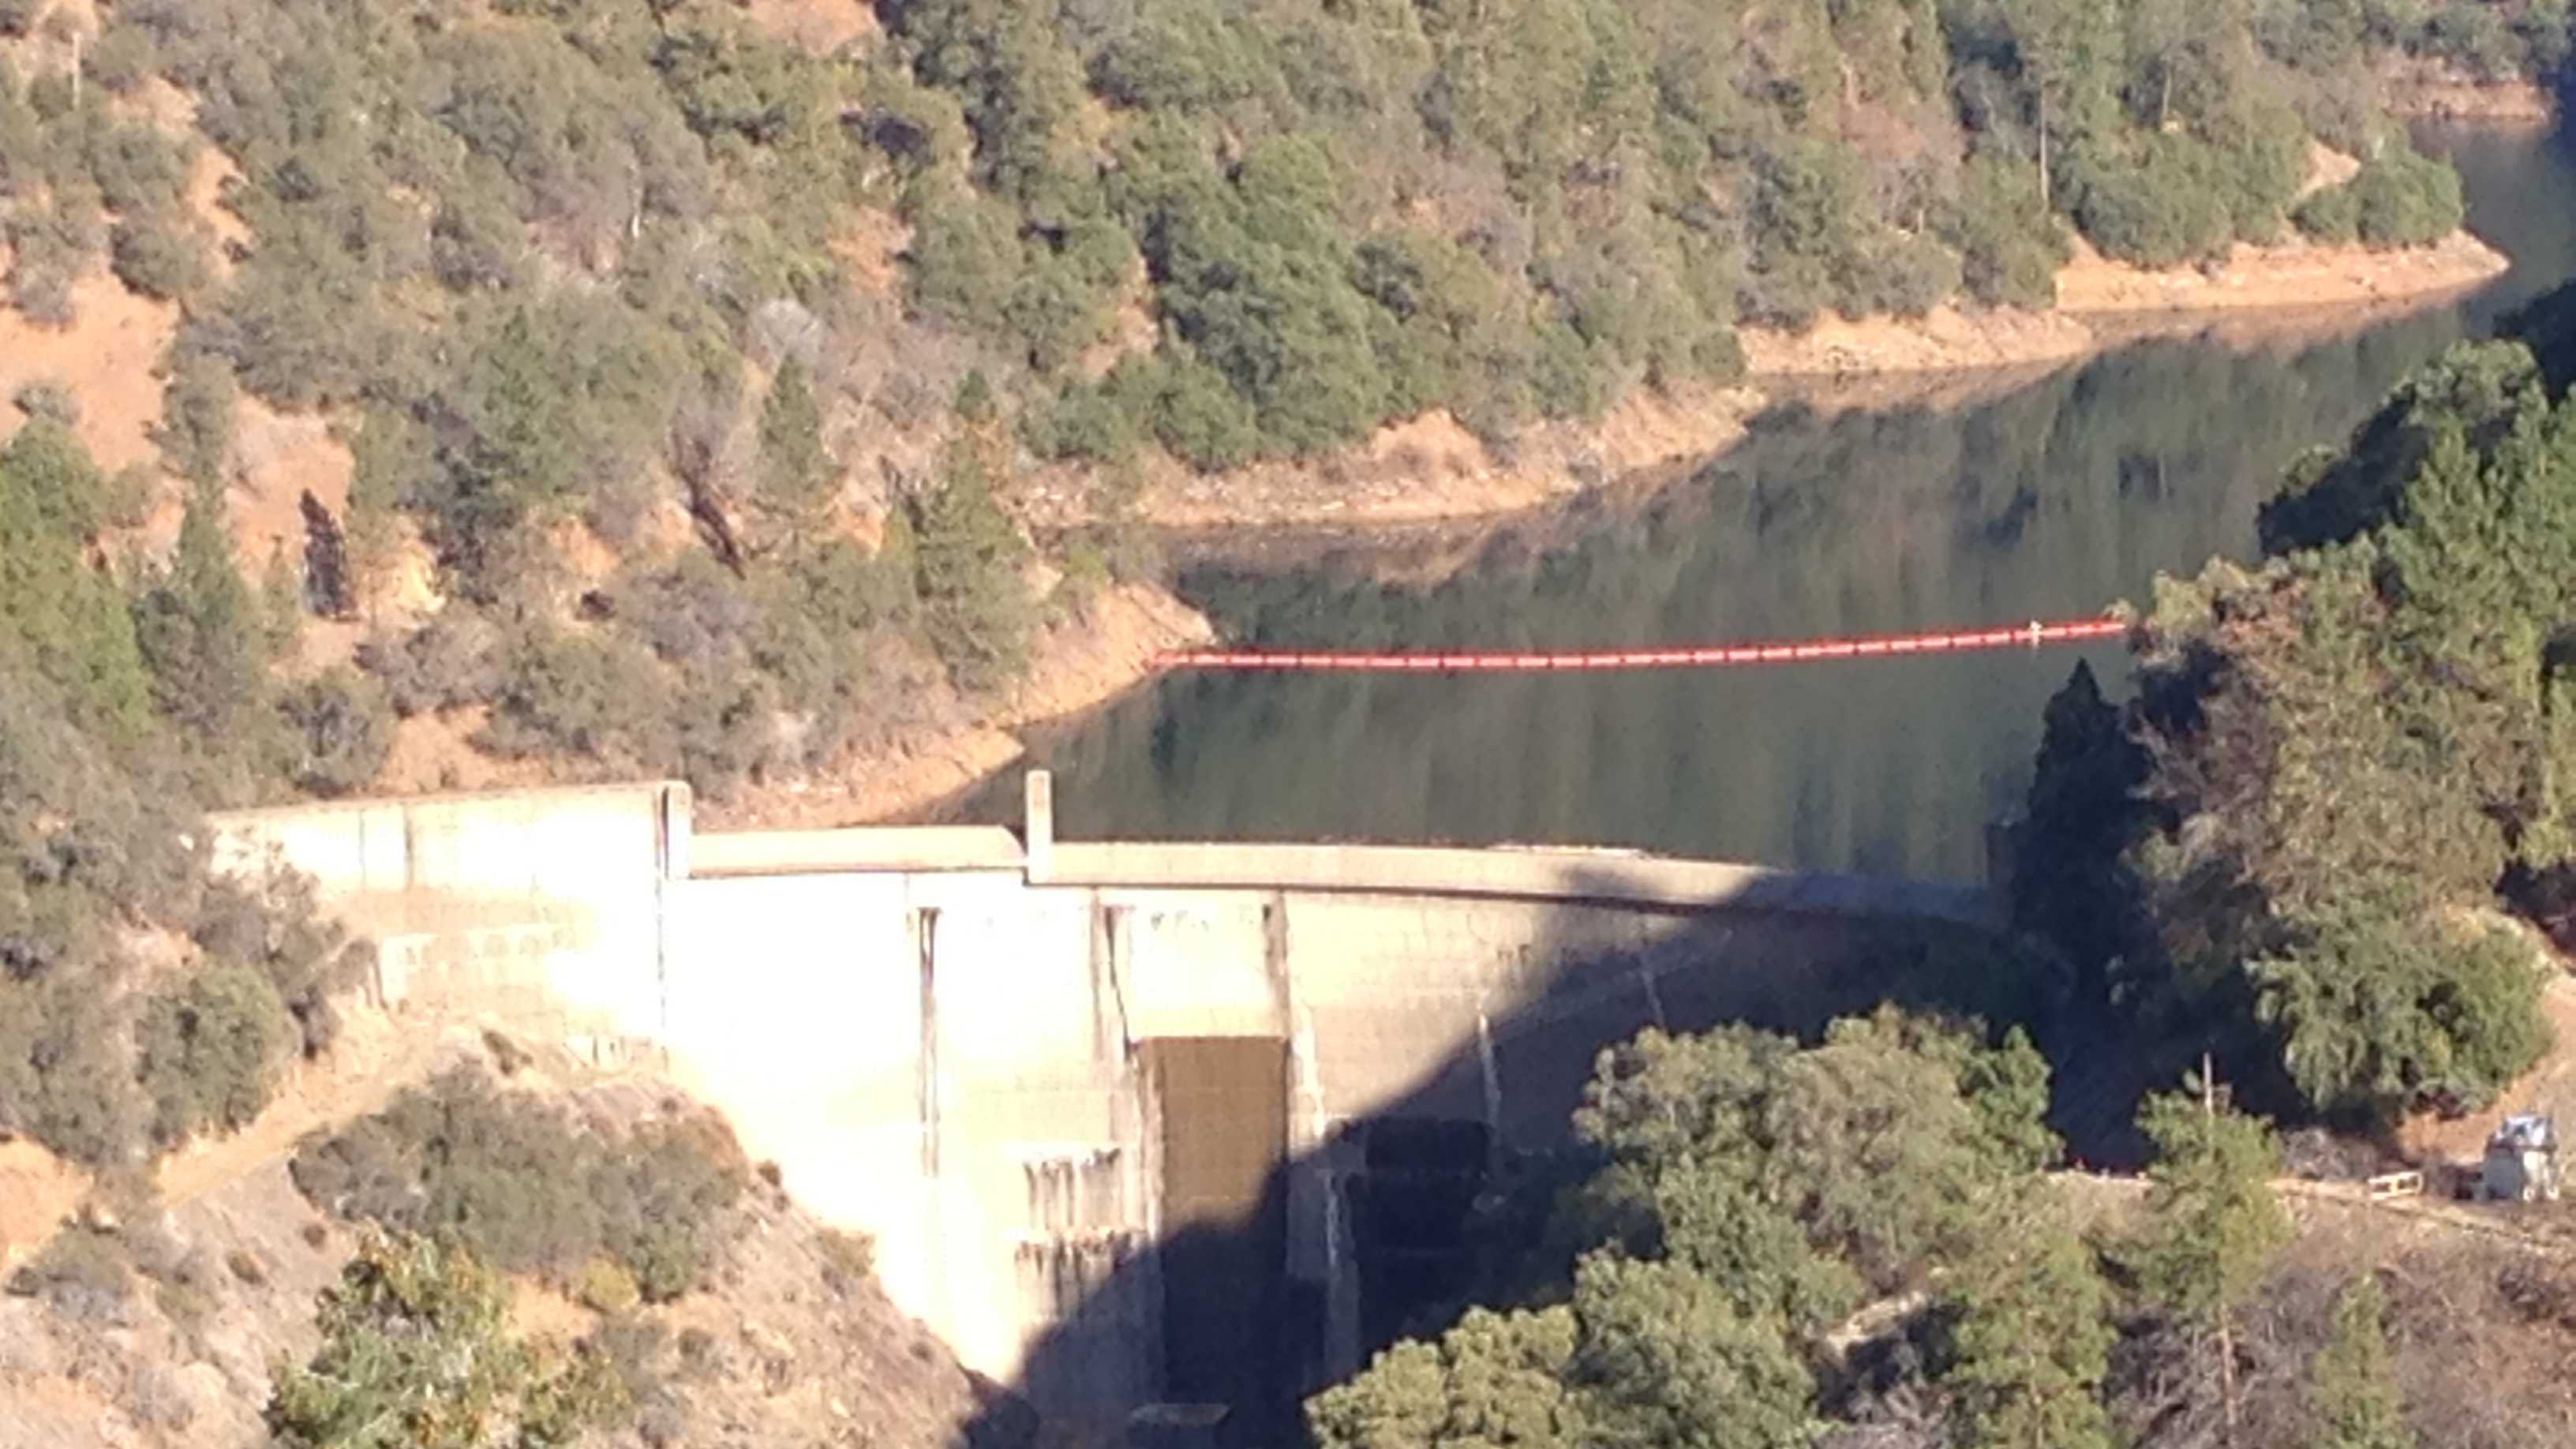 Slab Creek is one of 11 reservoirs used by SMUD for hydroelectricity production.